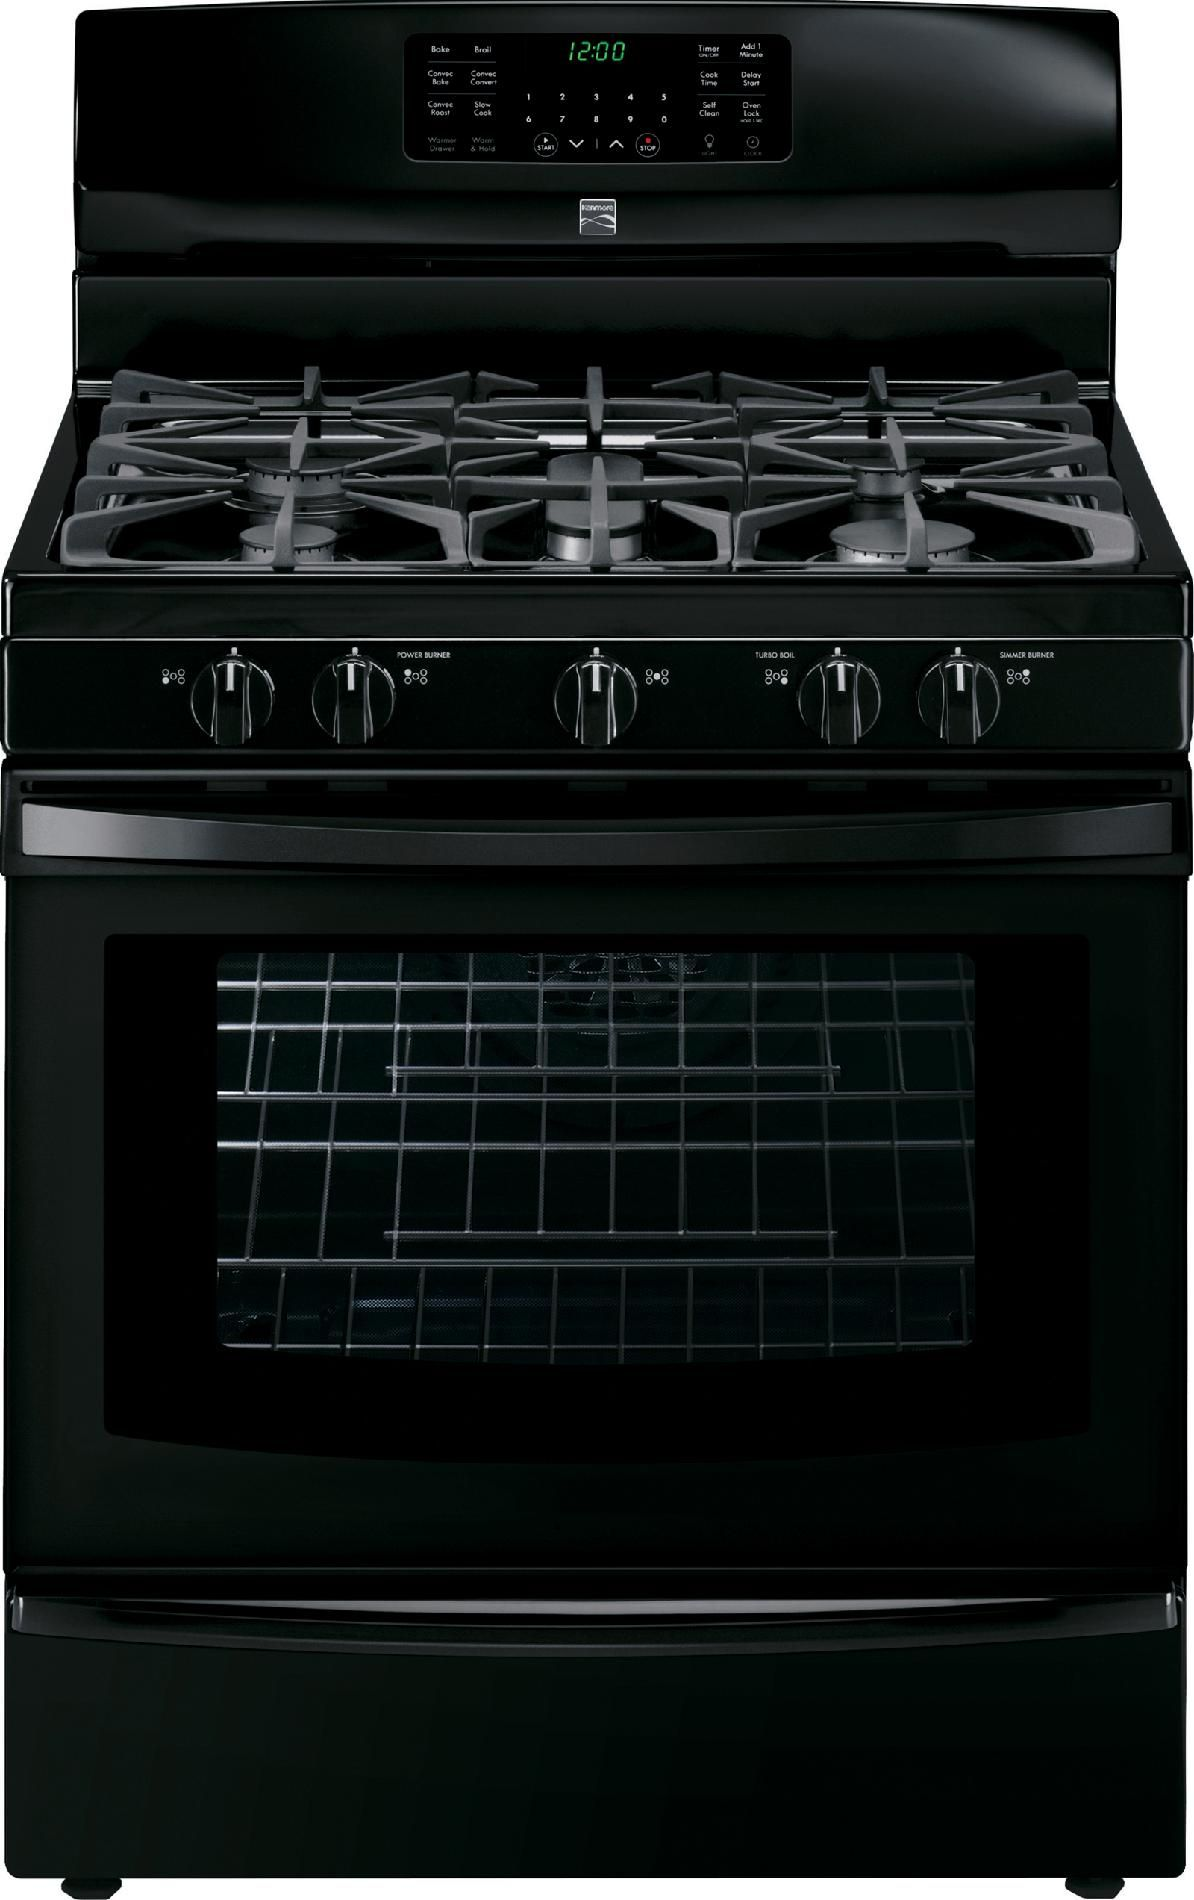 Kenmore Gas Range 74339 5.6 cu. ft. Convection Oven and 5 Sealed Burners in  Black